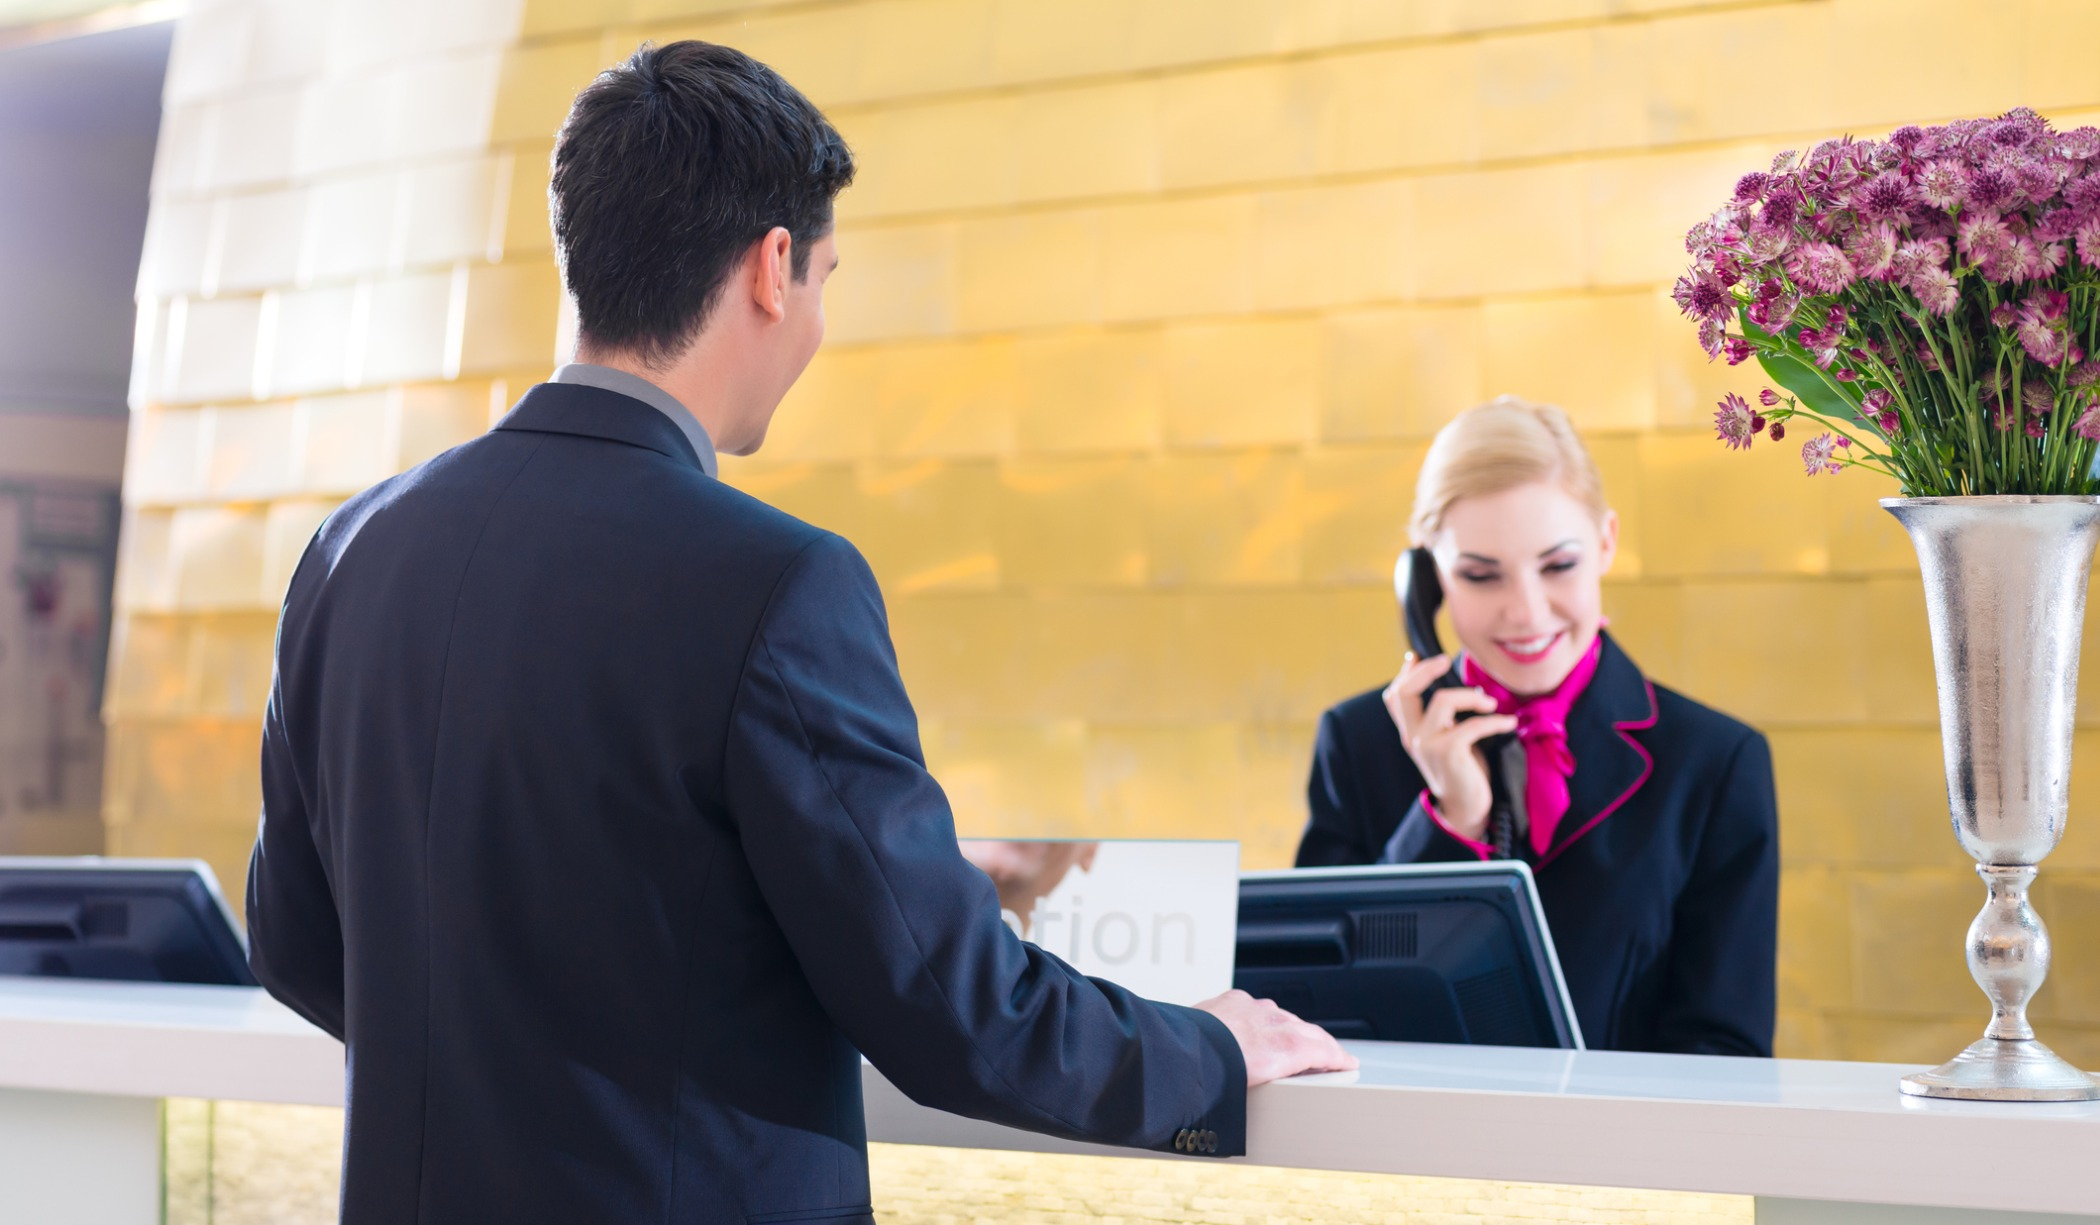 The Move to Managed Voice: A Shift in the Way VoIP is Done